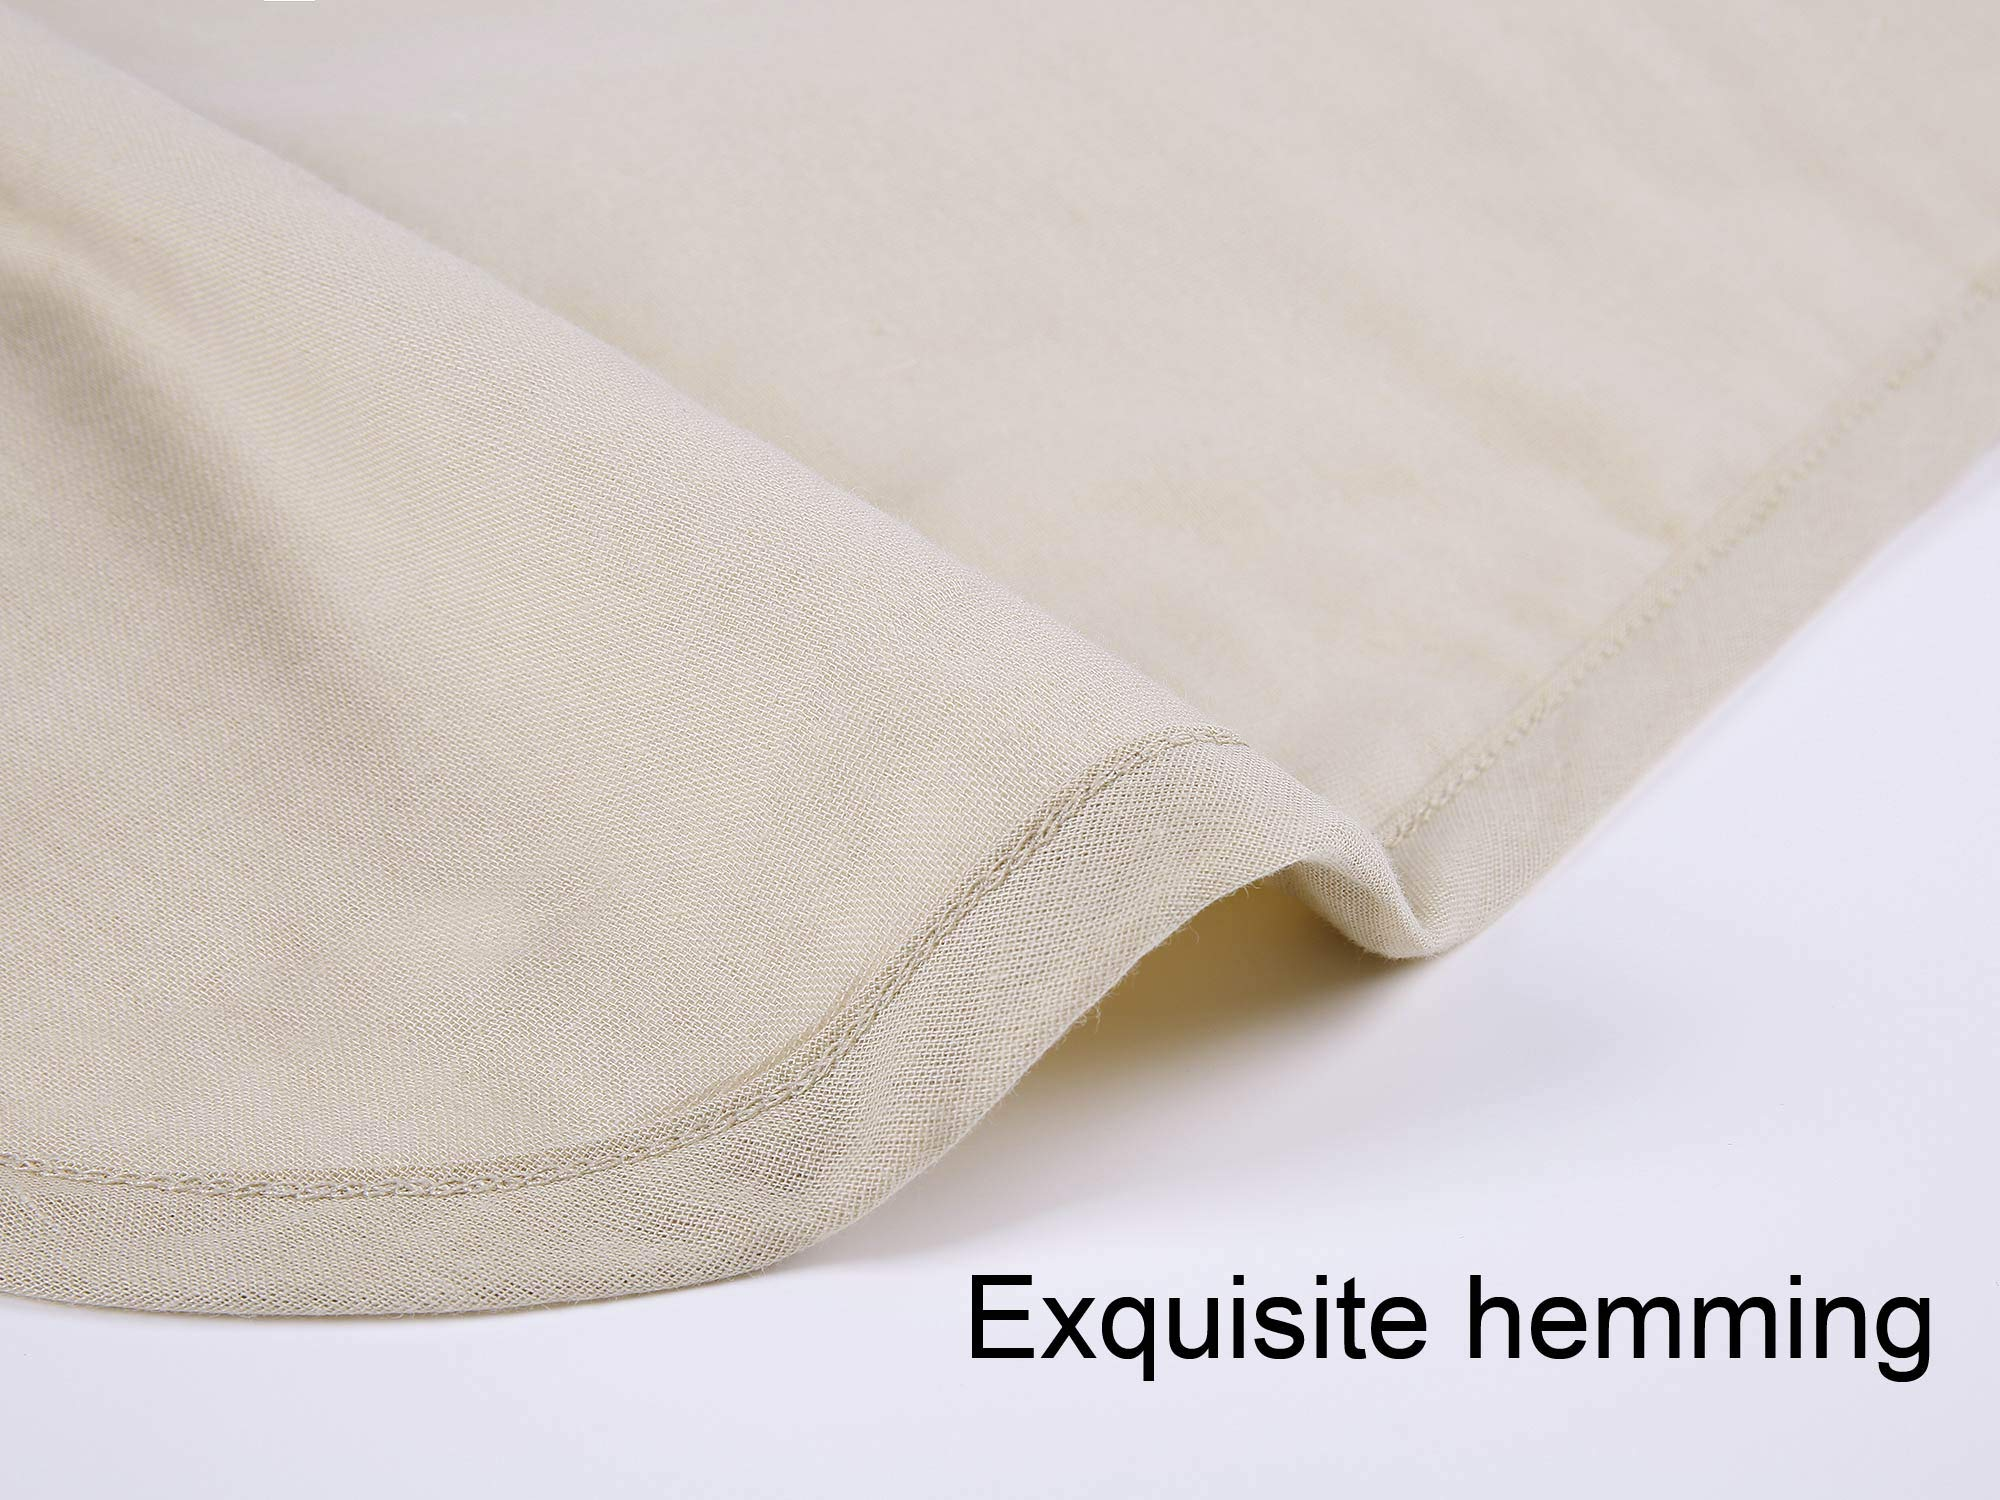 GYS Ultra Soft and Lightweight 100% Organic Cotton Hospital/Home Blanket (Twin Size, 30 Ounce, 58.3''x82.7''), Summer Quilt with 5 Layers of Organic Cotton, Flaxen by GYS (Image #3)